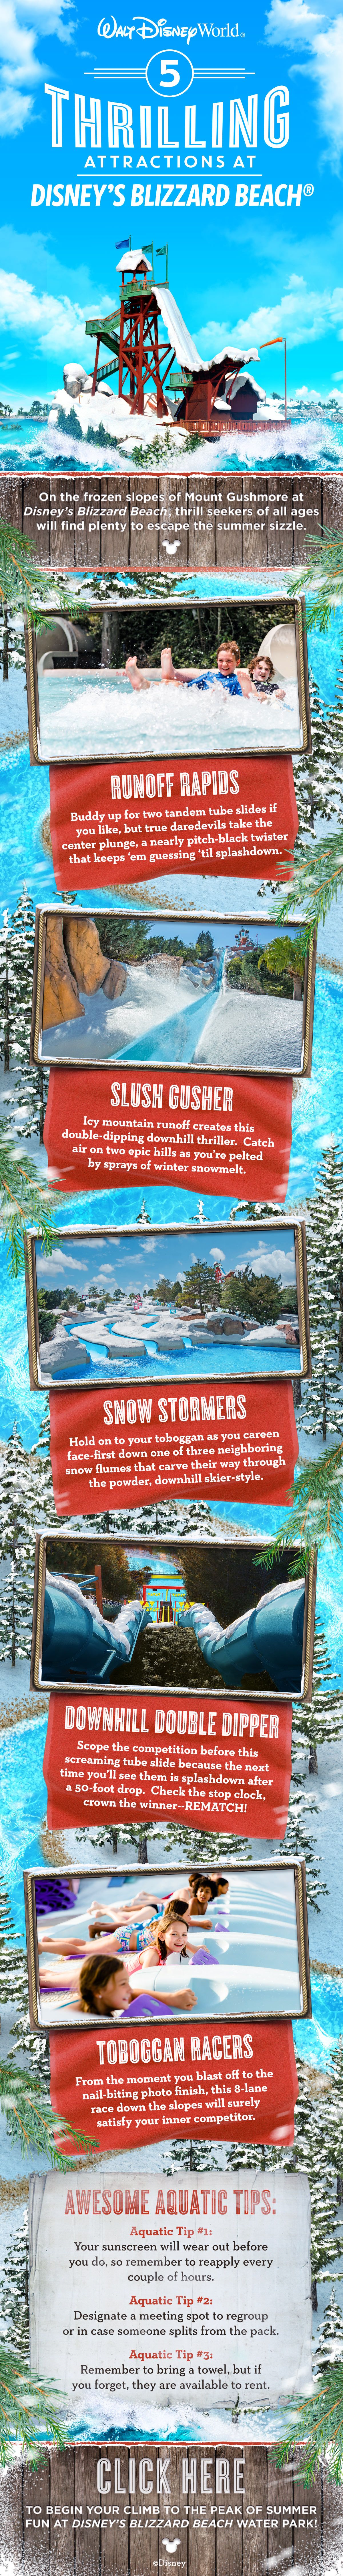 Thrill Seekers Will Find Plenty Of Action At Disney S Blizzard